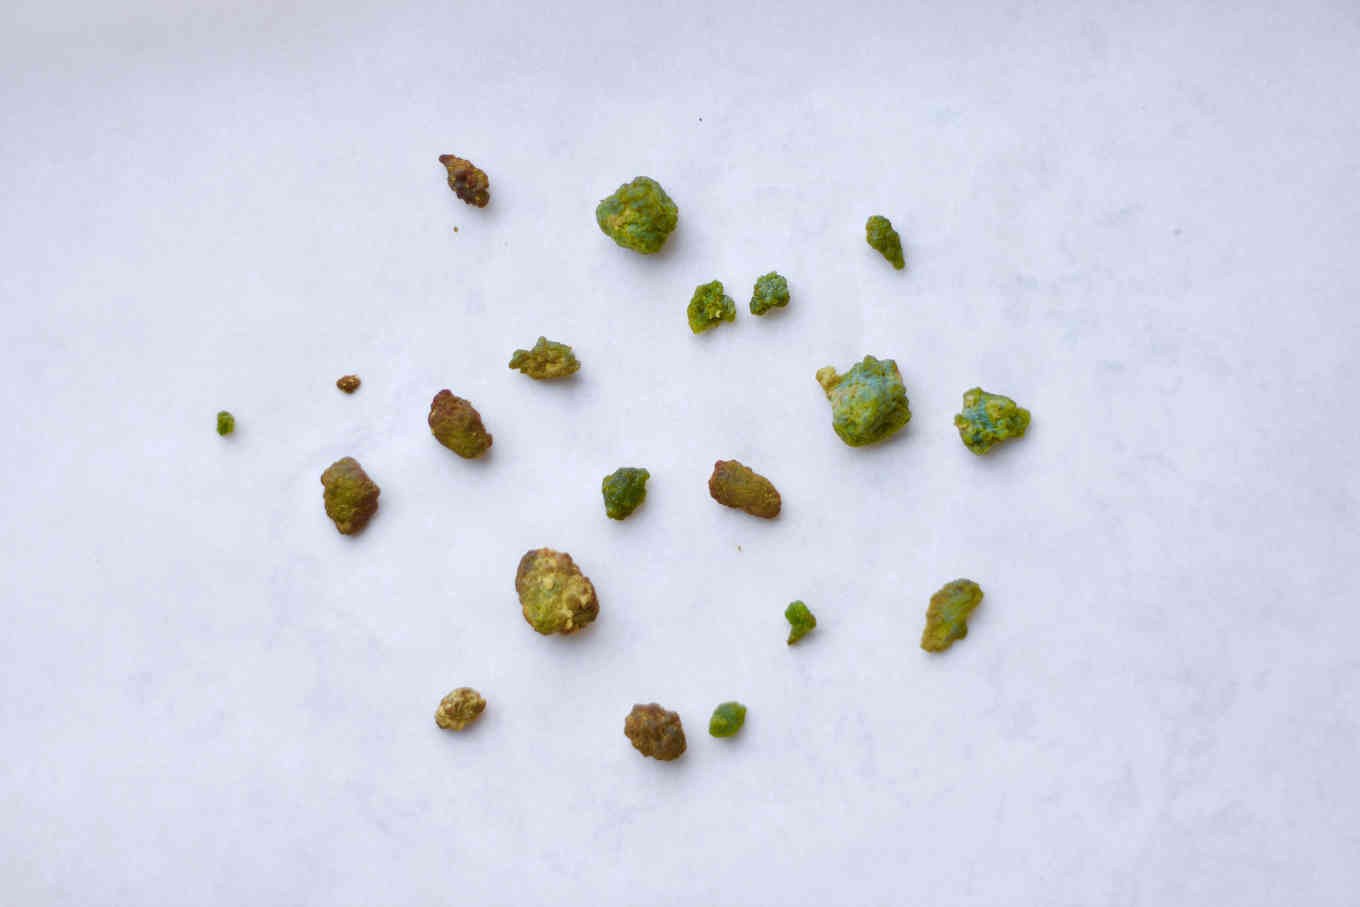 Gallstones from liver and gallbladder flush